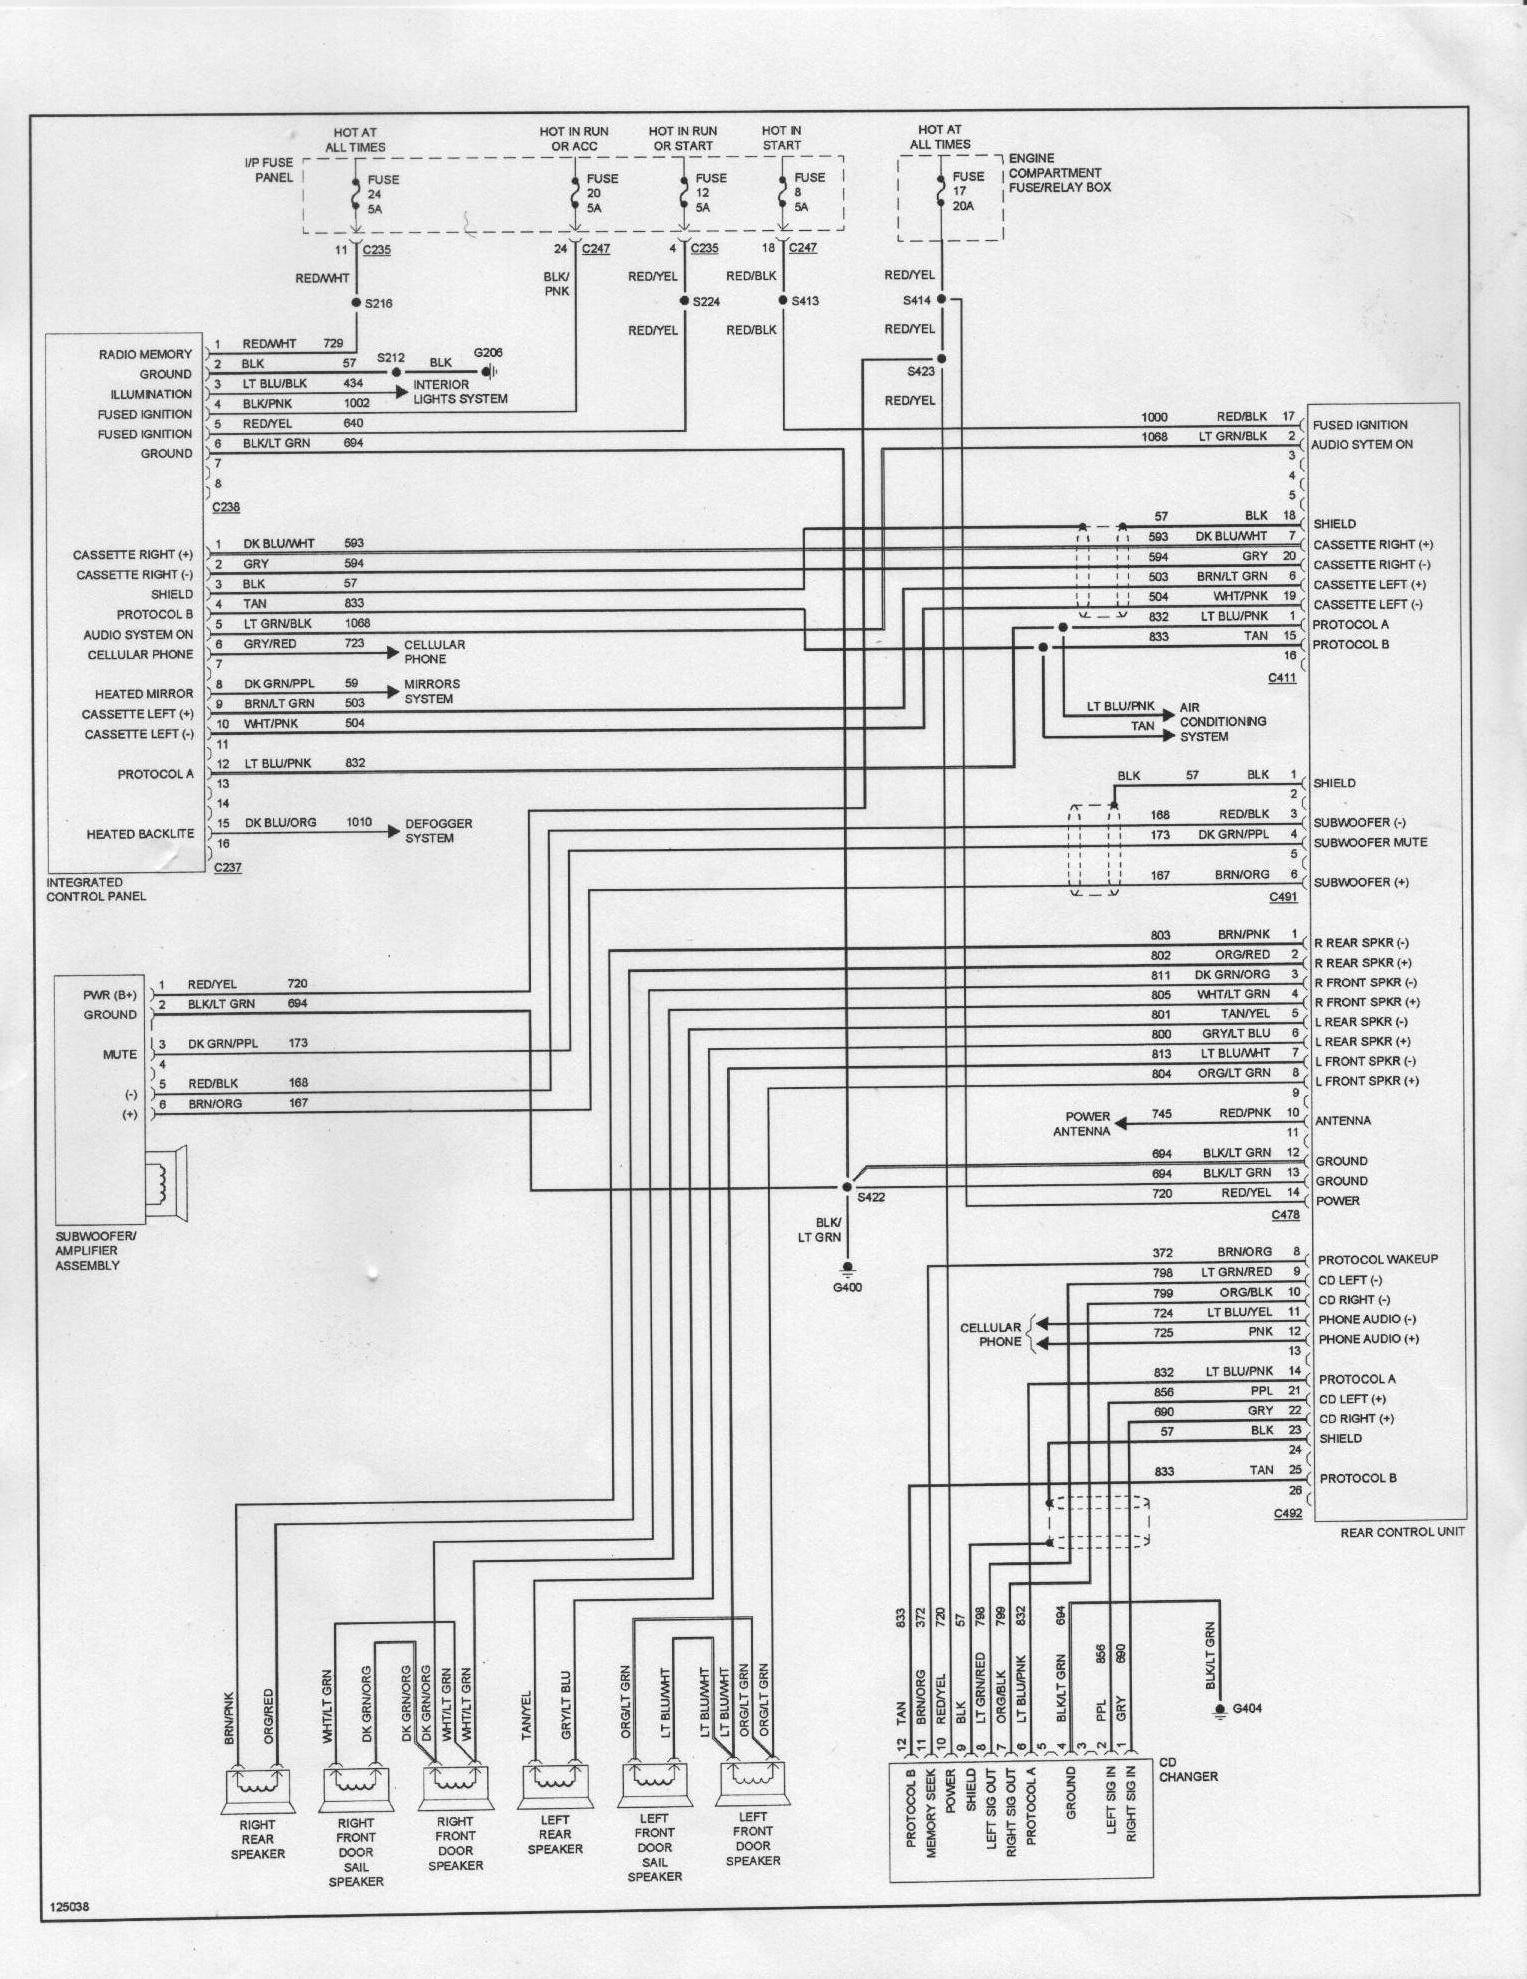 46509d1178551791 scosche orange wire _______ diagram96 scosche gm2000 wiring diagram scosche gm2000 wire harness \u2022 wiring scosche wiring harness diagrams ford at creativeand.co